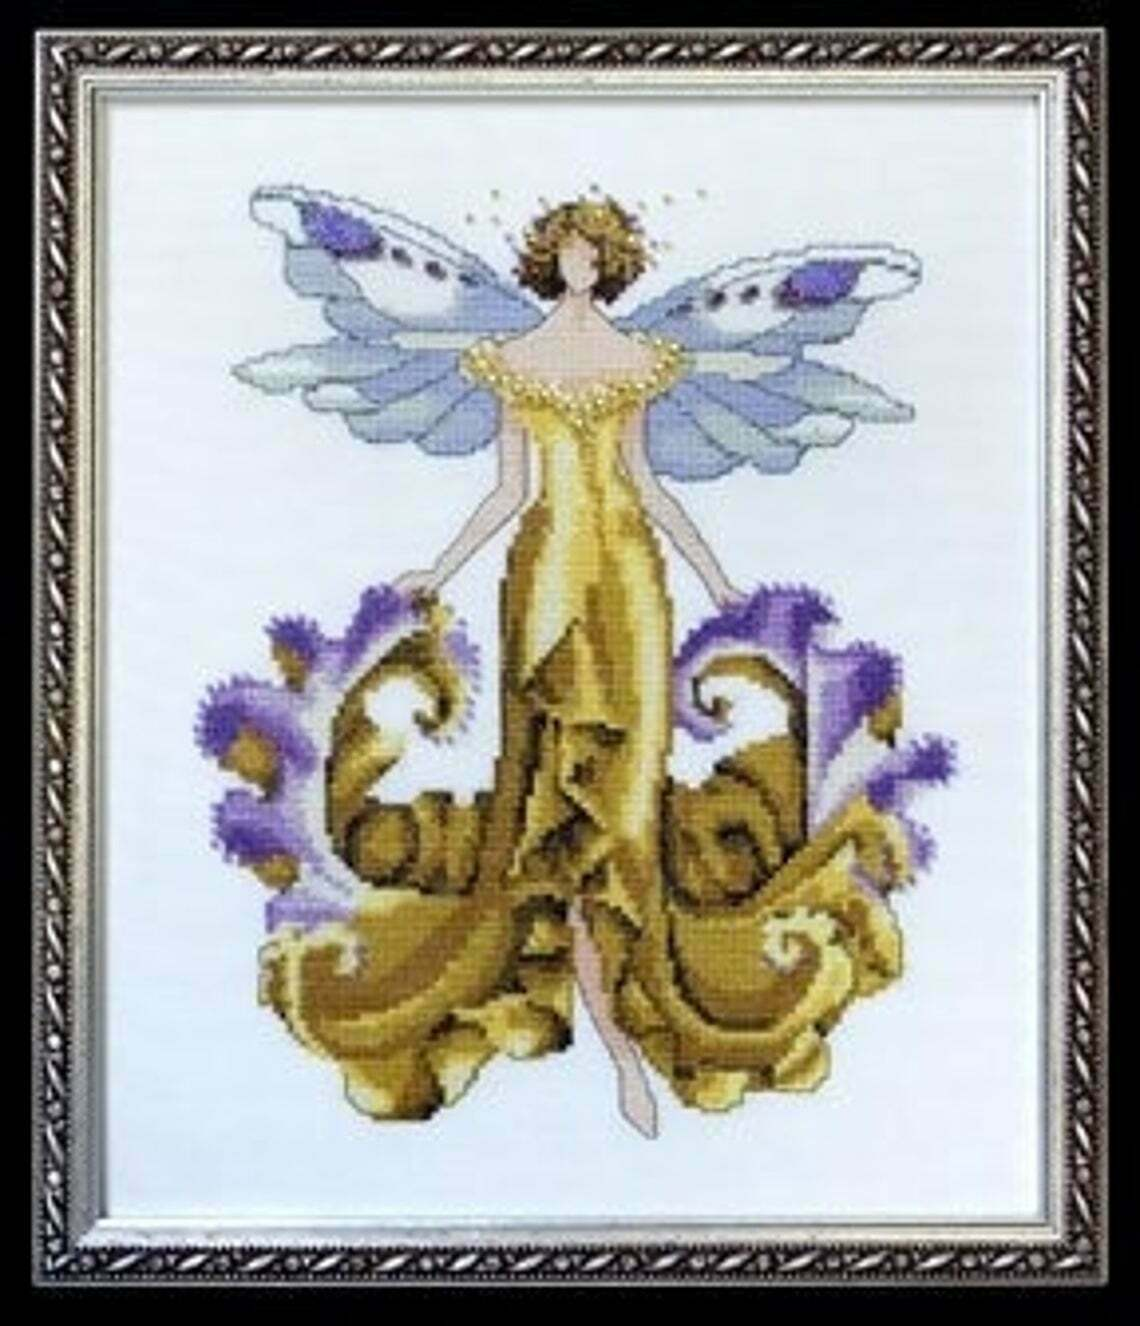 """Chart and Embellishment + SPECIAL THREADS """"IRIS NC125"""" by Nora Corbett - $24.74"""